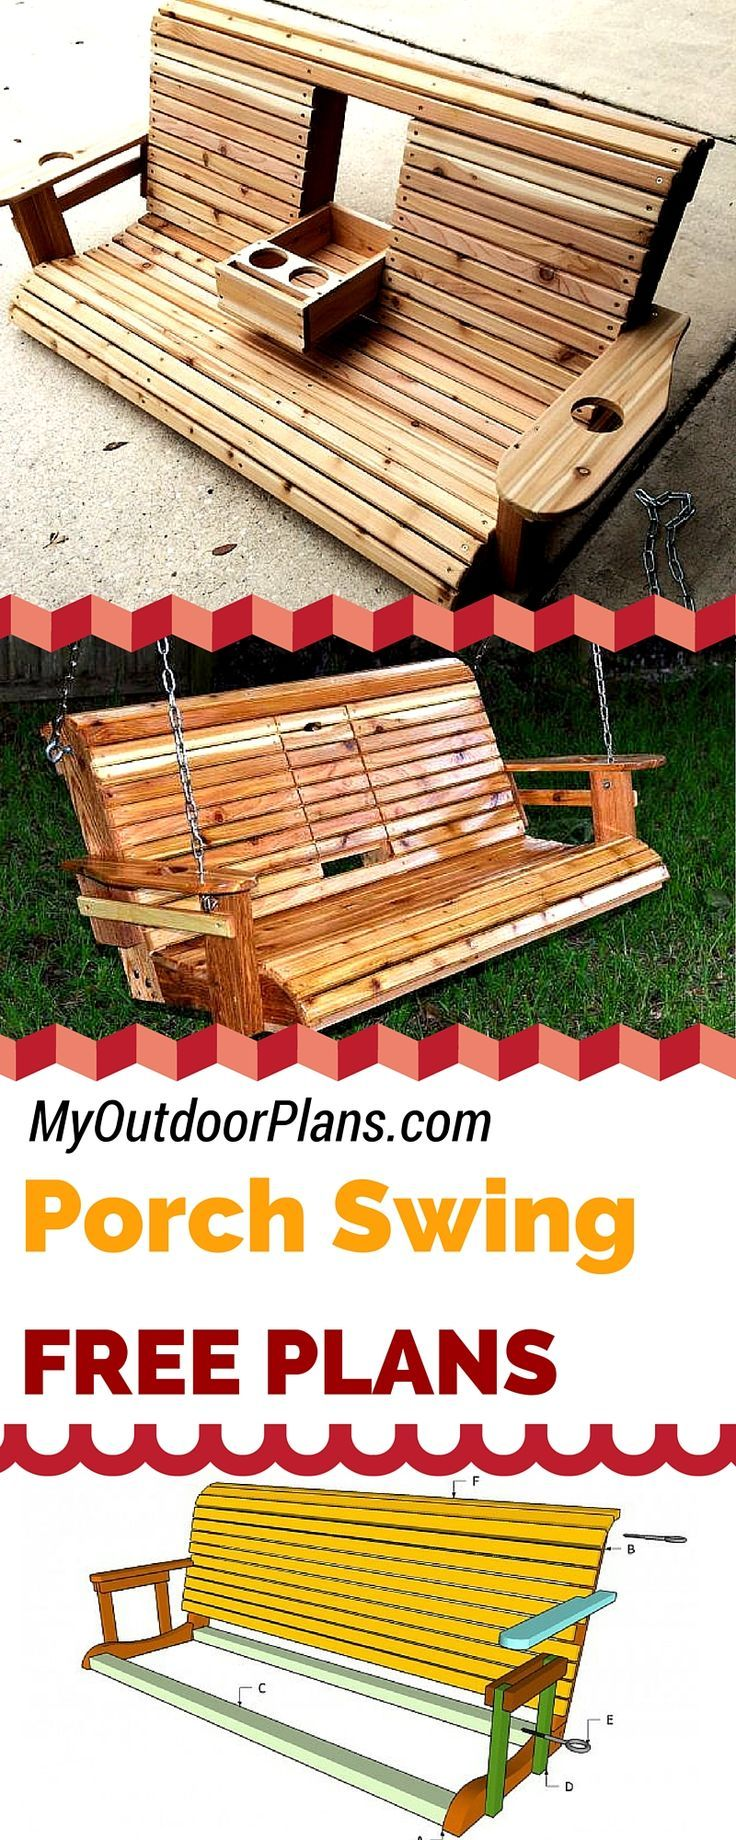 French tuteur trellis woodworking projects amp plans - Free Porch Swing Plans Learn How To Build A Porch Swing With My Free Plans